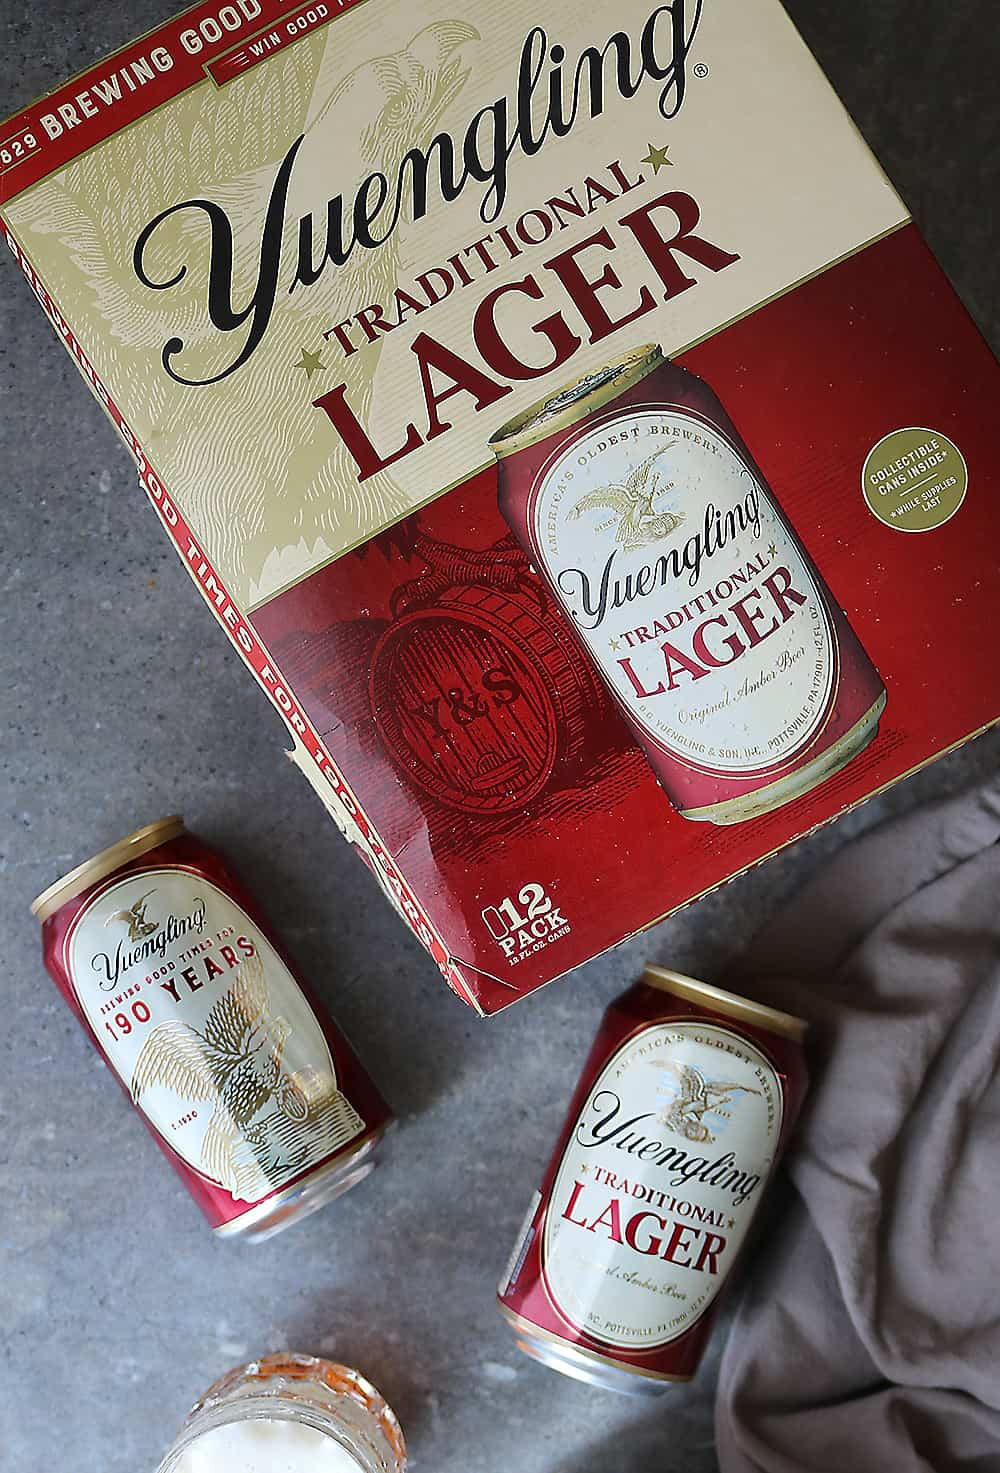 Yuengling 190th anniversary collectible cans